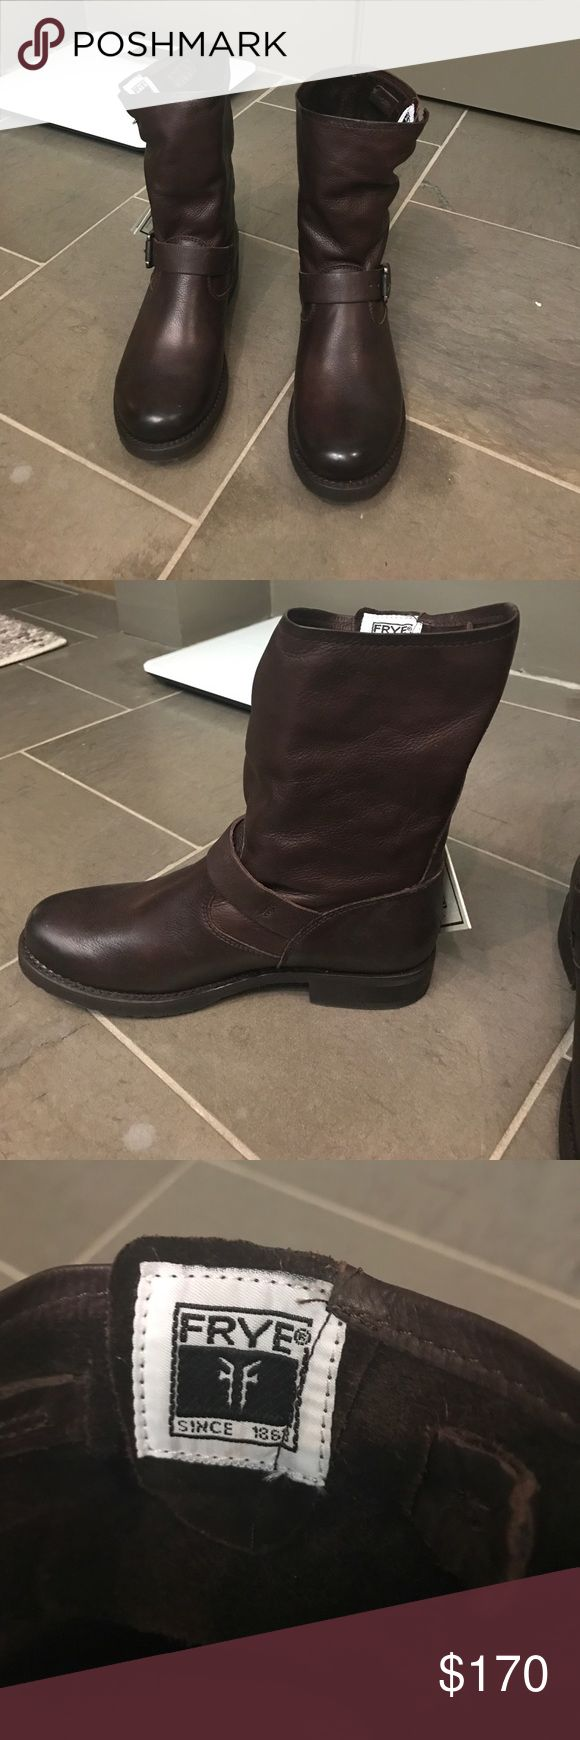 Frye Veronica short boot Brand new. Never worn. Has tags. No box. Frye Shoes Combat & Moto Boots